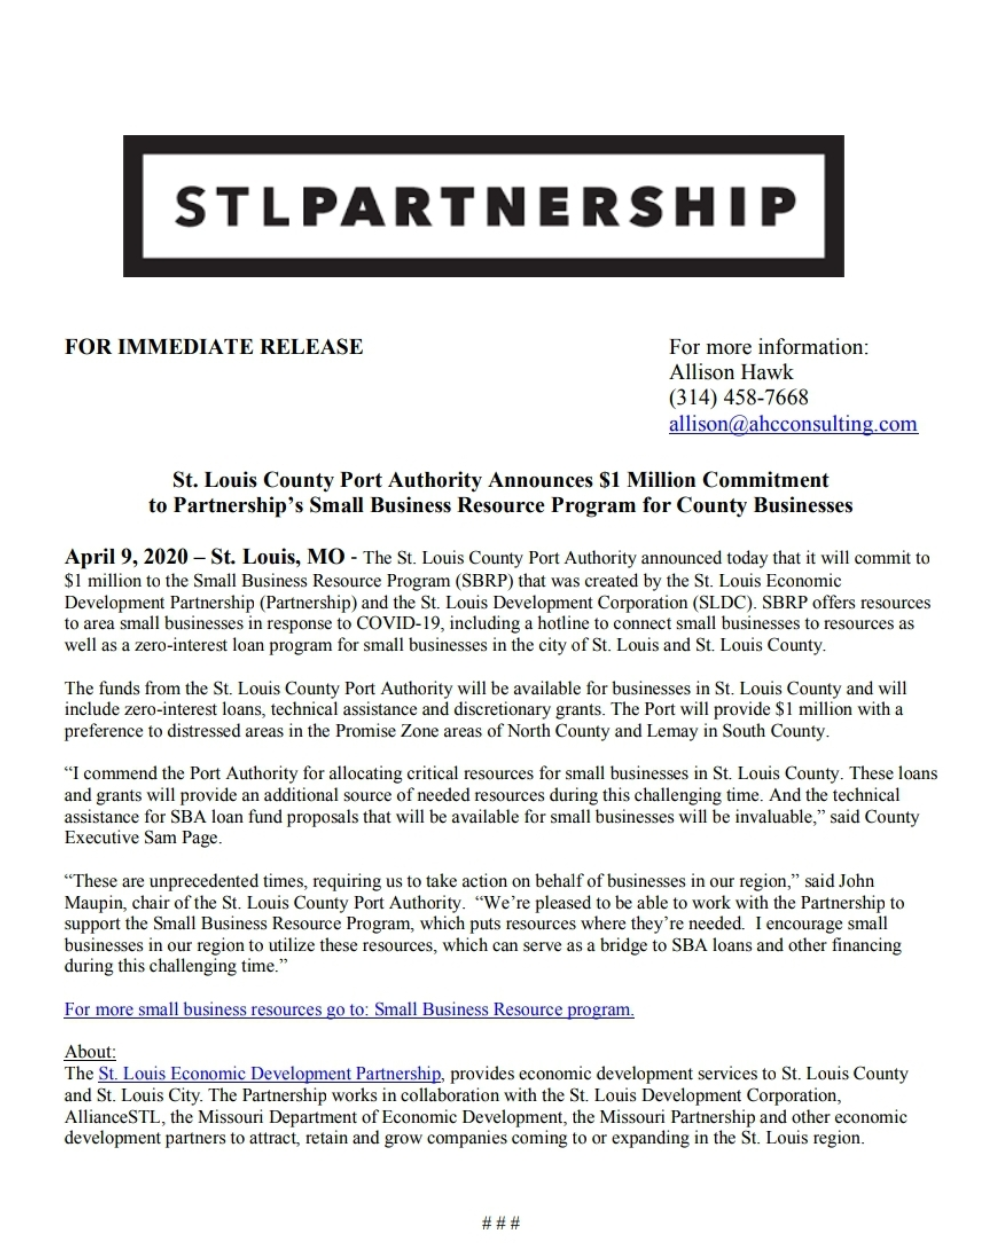 St. Louis County Port Authority Announces $1 Million Commitment to Partnership's Small Business Resource Program for County Businesses